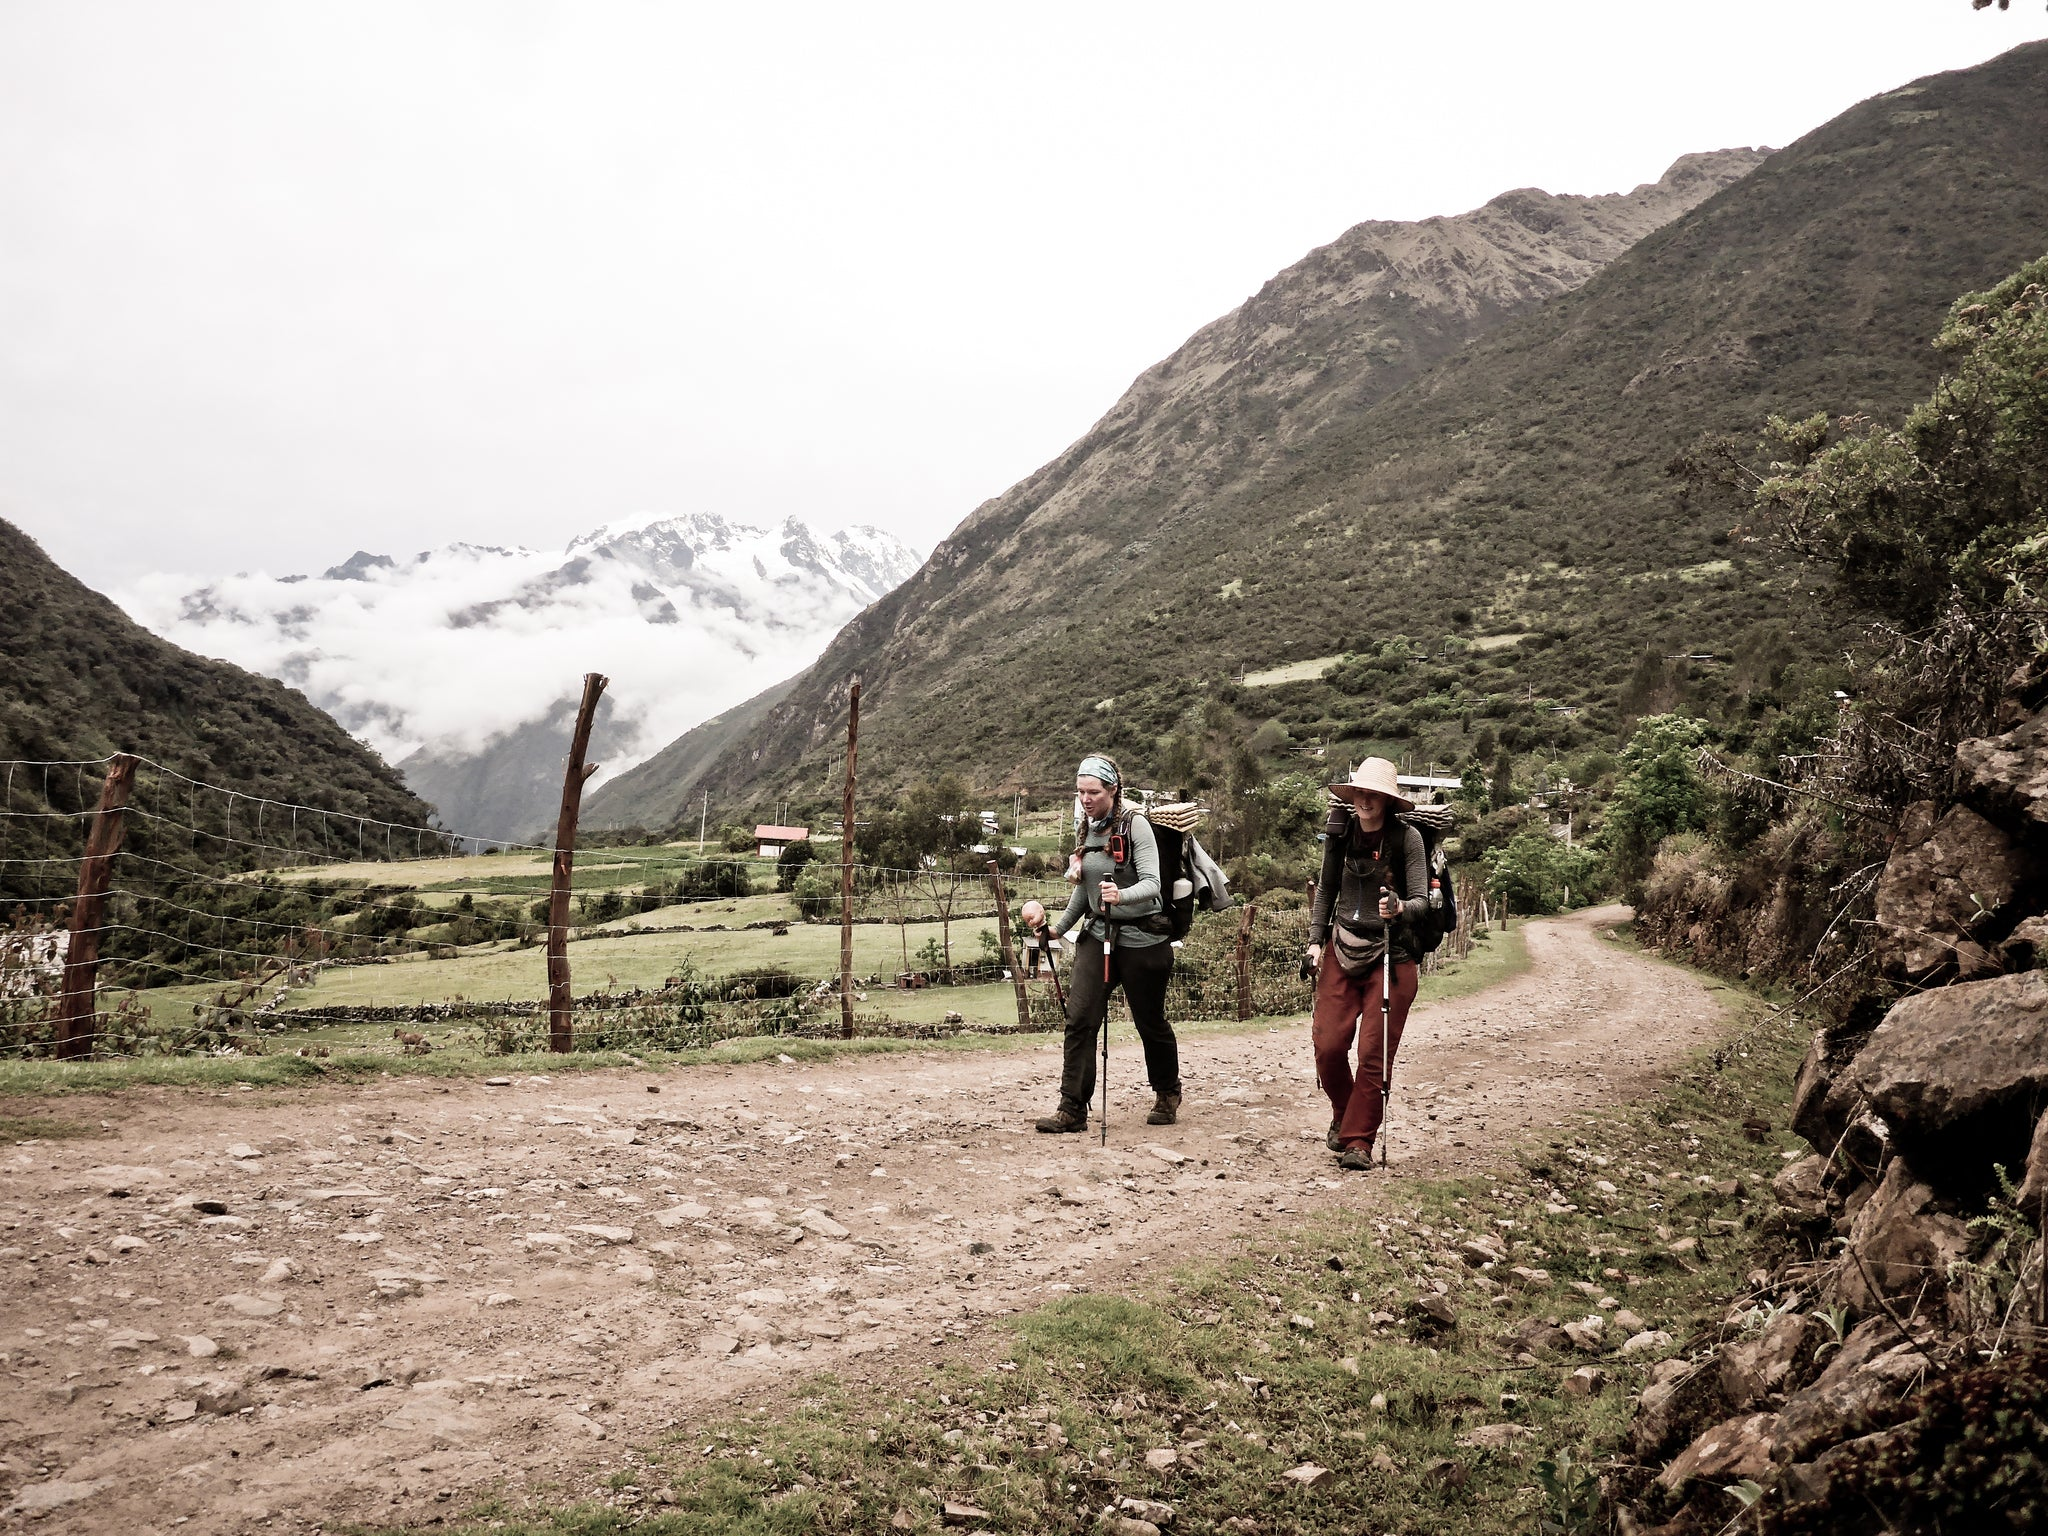 A section of dirt roads connects the Sacred Valley proper to the Choquequirao Ruins trail. Much of this is intersected by local footpaths.